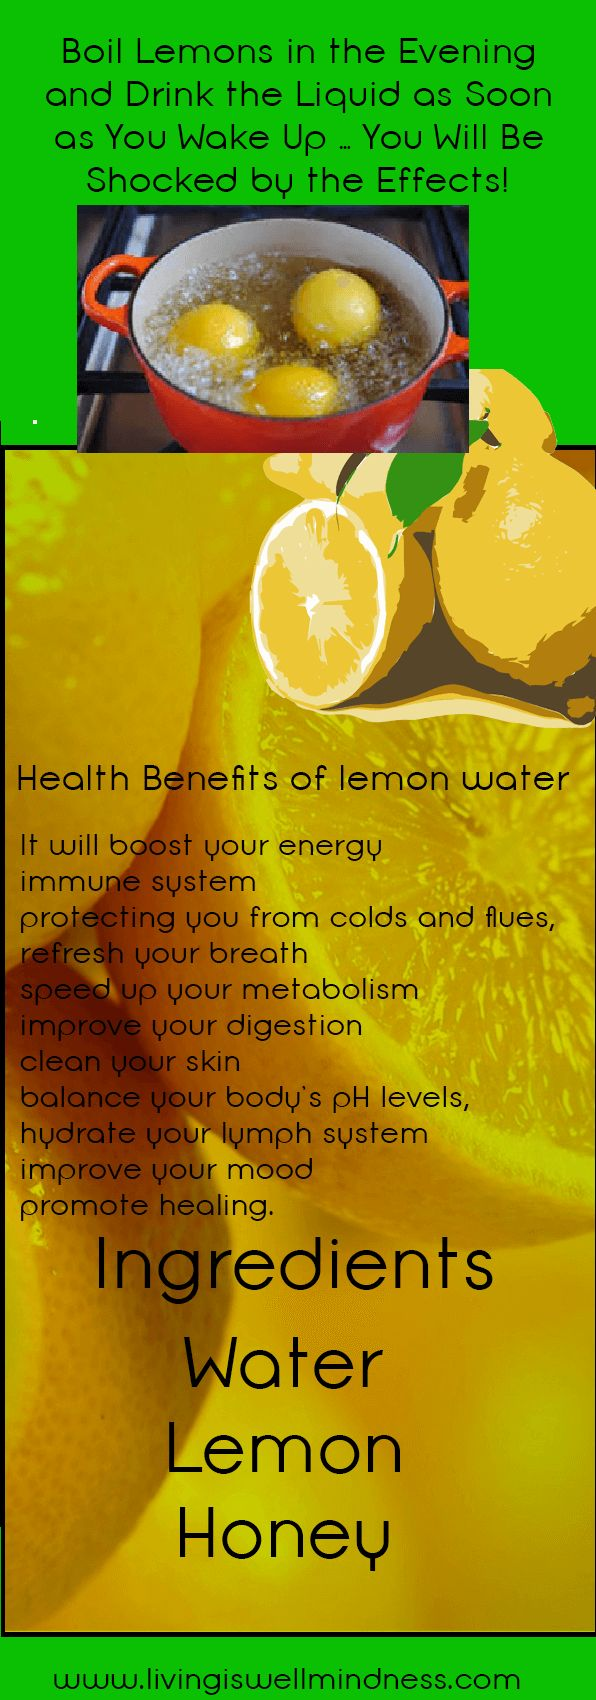 How to use water with lemon for weight loss ehow - Boil Lemons In The Evening And Drink The Liquid As Soon As You Wake Up You Will Be Shocked By The Effects Diet